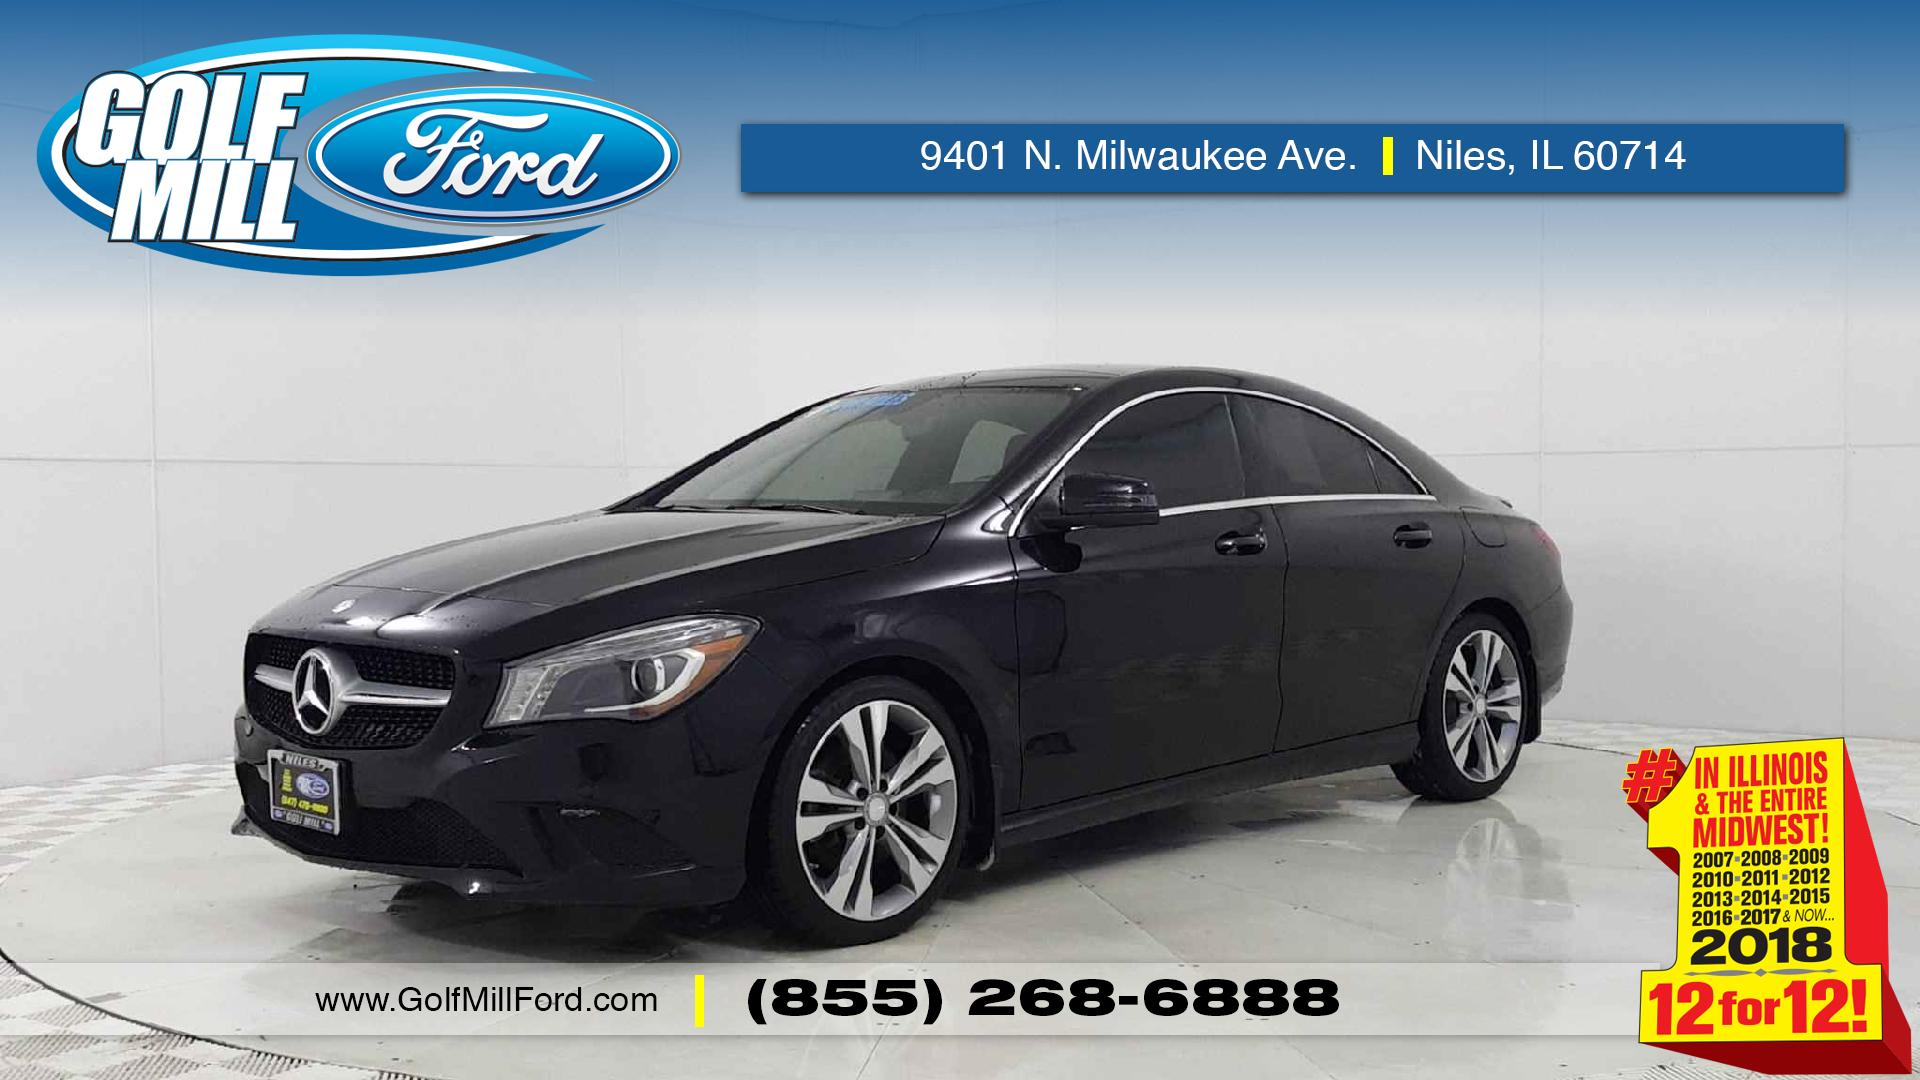 Used Mercedes Benz for Sale in Niles IL Golf Mill Ford